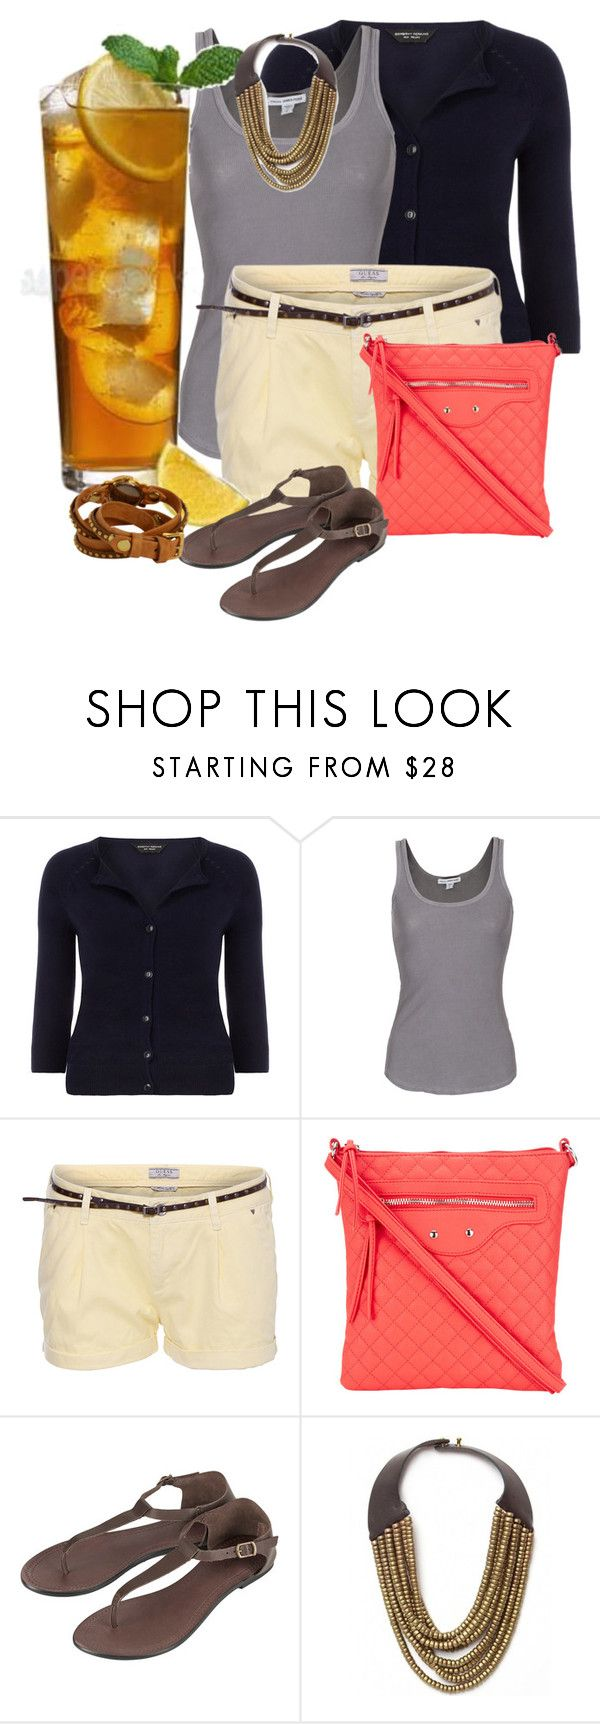 """""""It's 5 O'Clock Somewhere Contest #2"""" by lifebeautiful ❤ liked on Polyvore featuring Dorothy Perkins, James Perse, GUESS, Wallis, Topshop, Hoss Intropia and La Mer"""